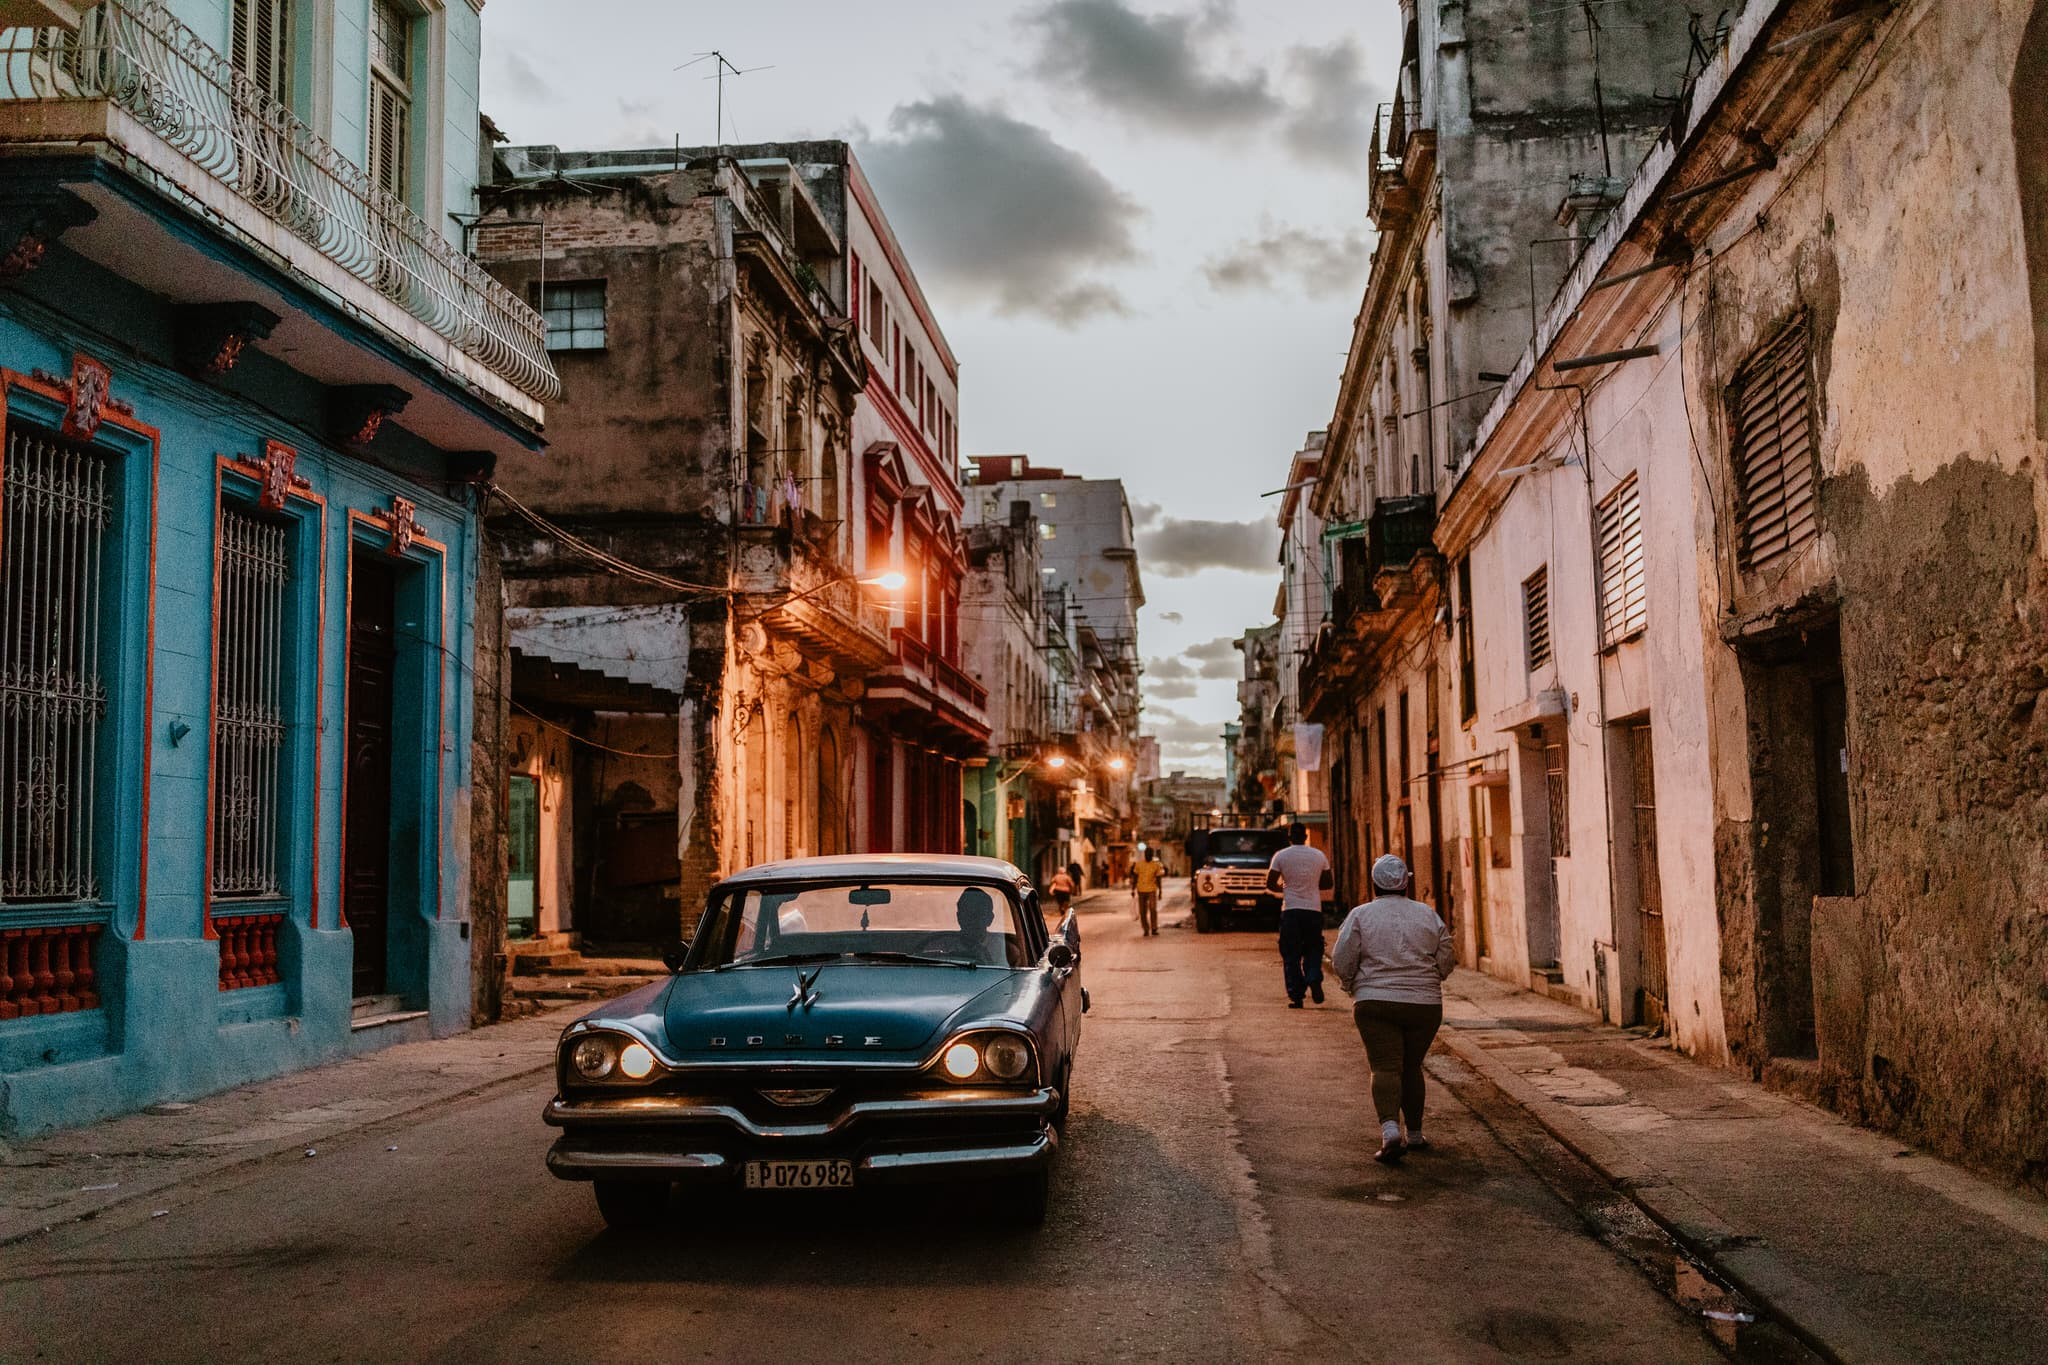 A blue Dodge at dusk in Havana, one of the classic cars of cuba. Travel photographer Brent Calis.